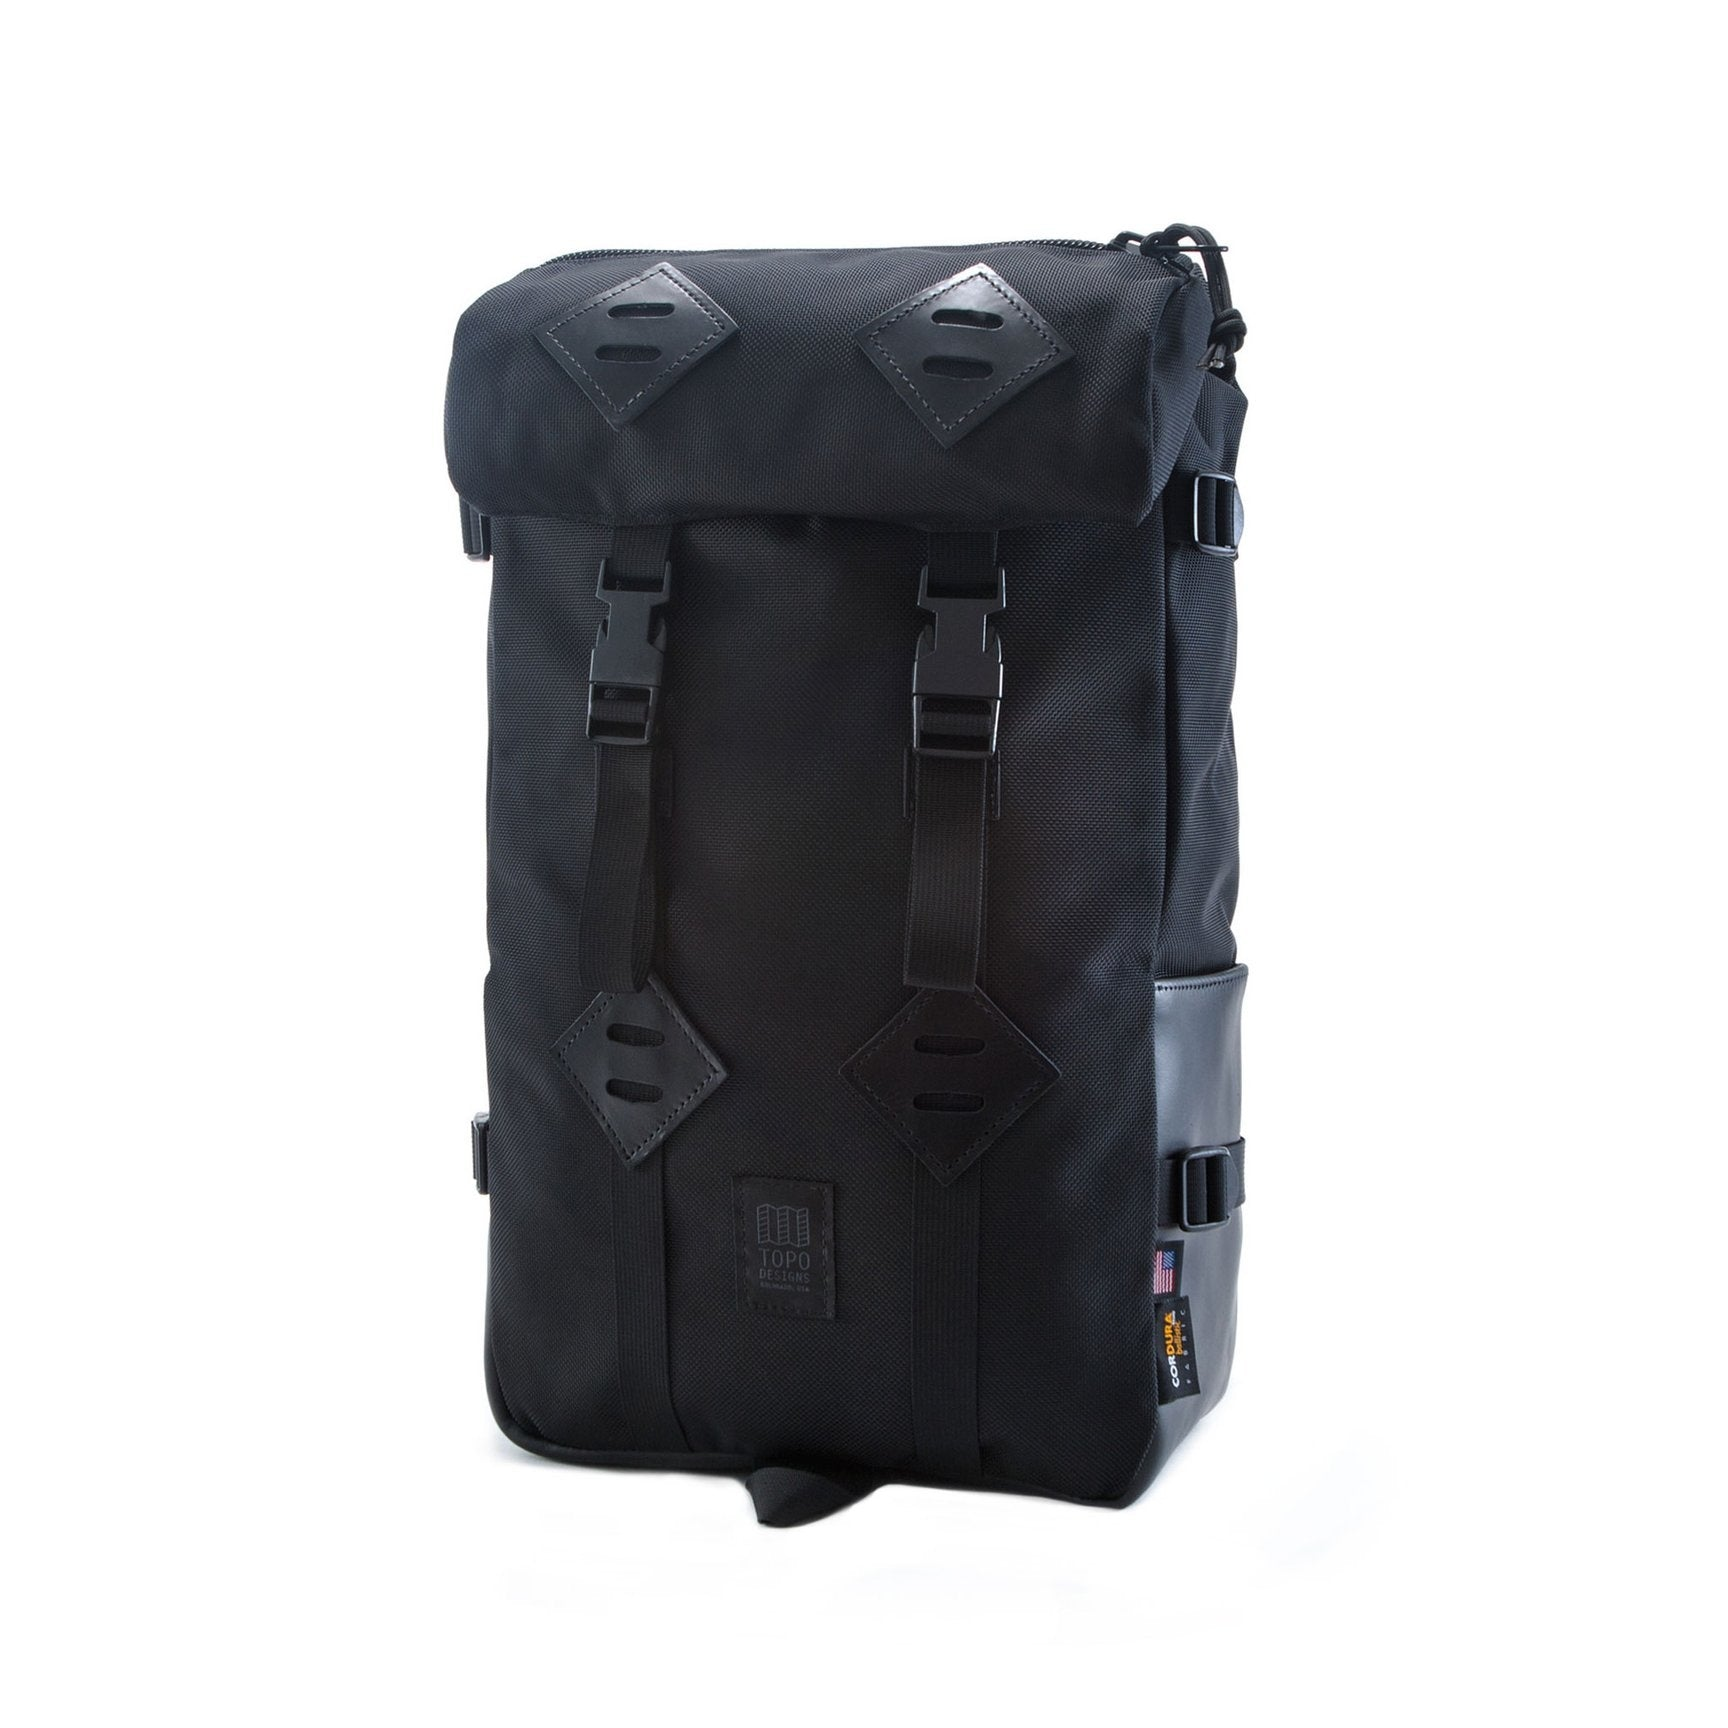 Klettersack - Ballistic Black Leather